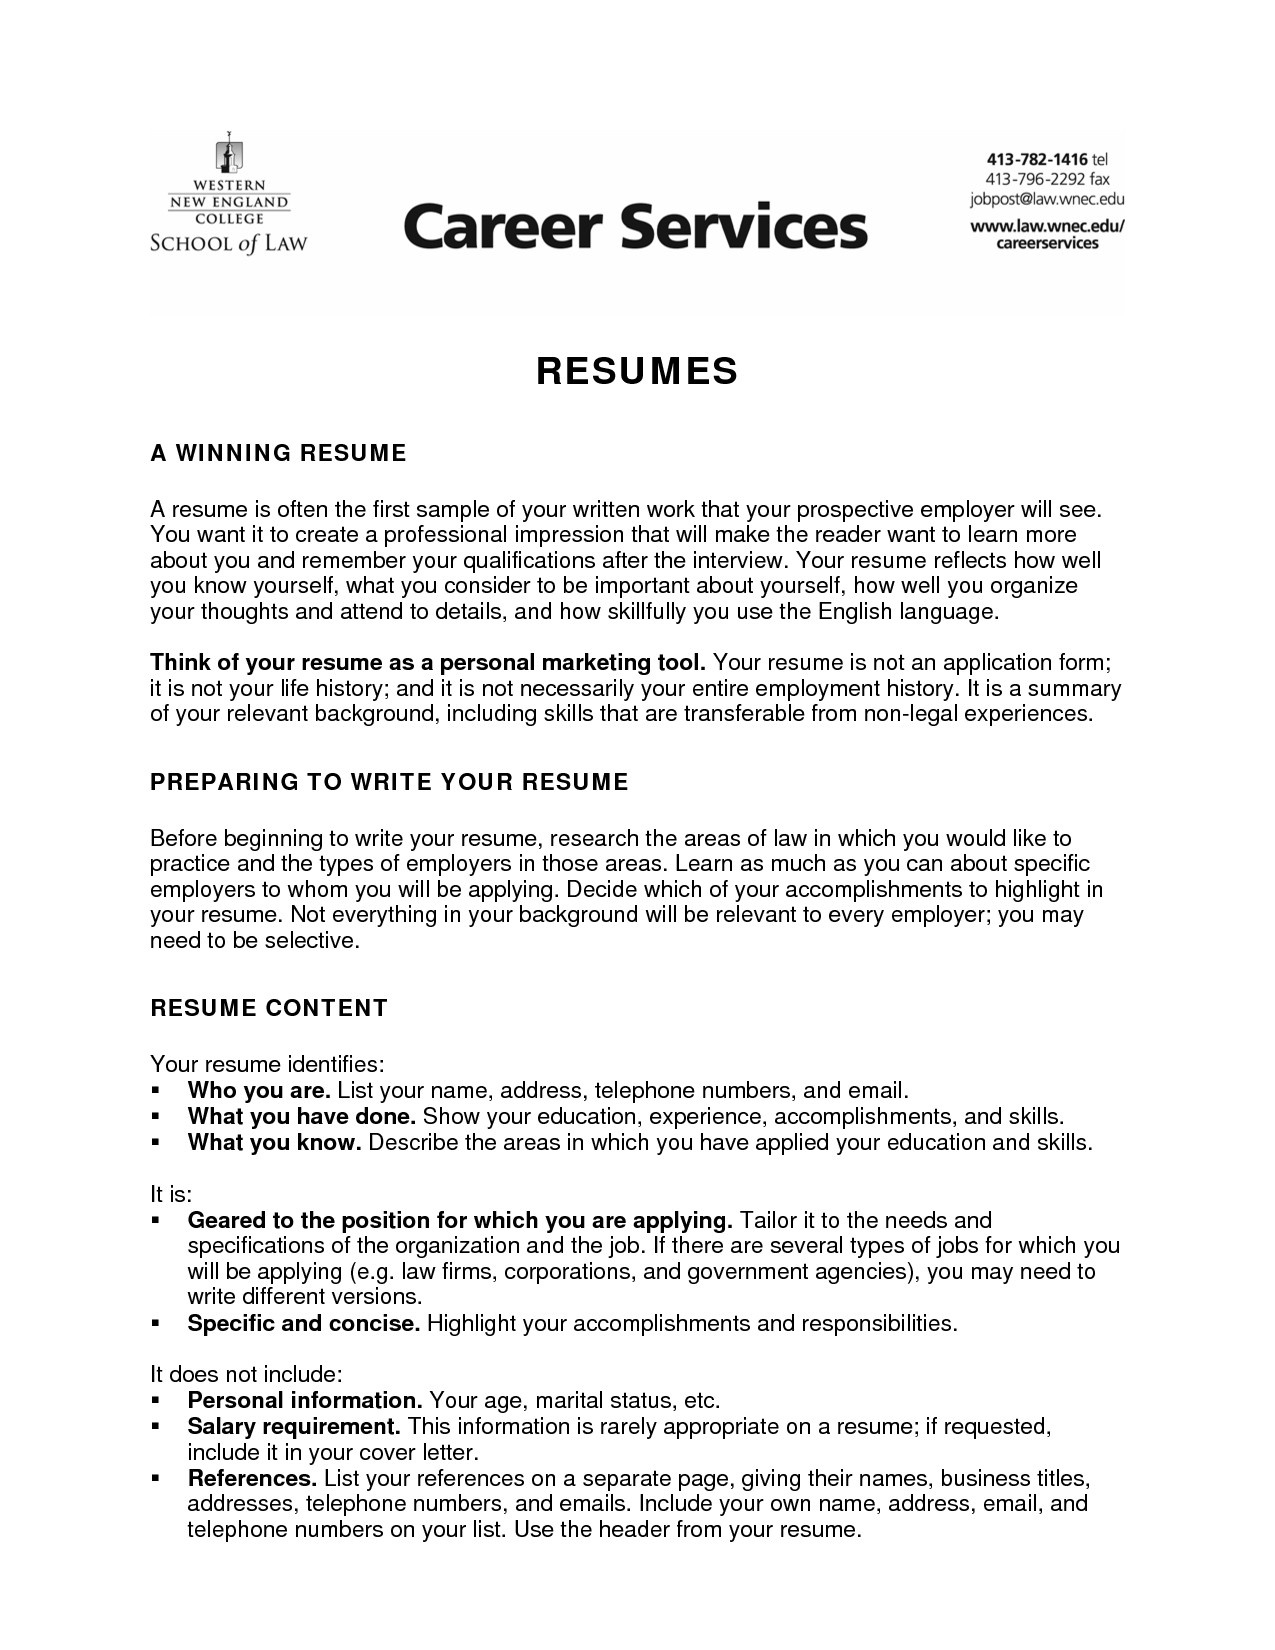 Career Services Resume - Nursing Resume Objective Examples Best Elegant Good Nursing